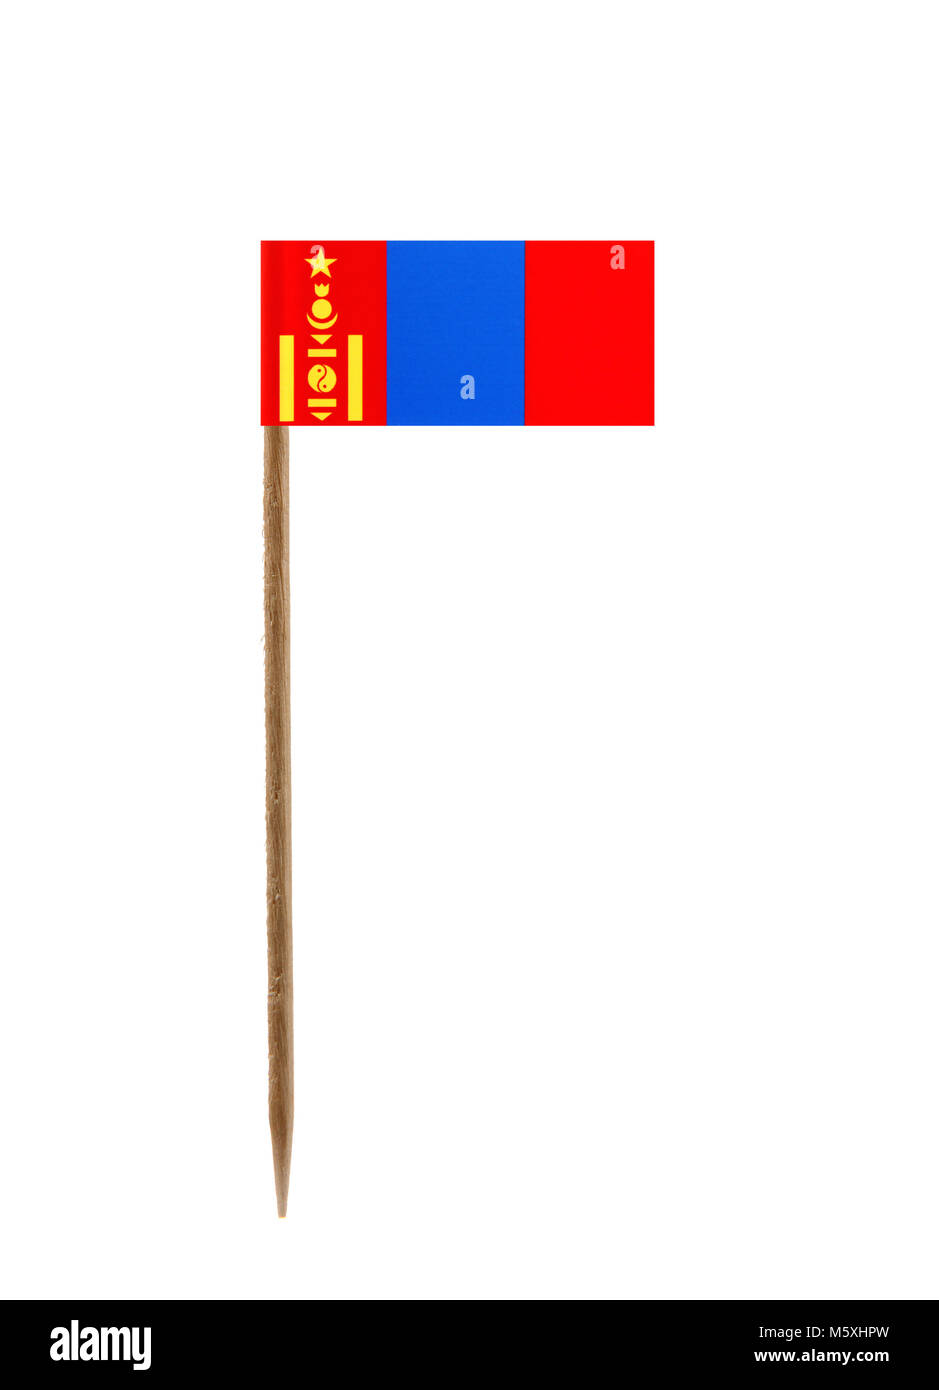 Tooth pick wit a small paper flag of Mongolia - Stock Image